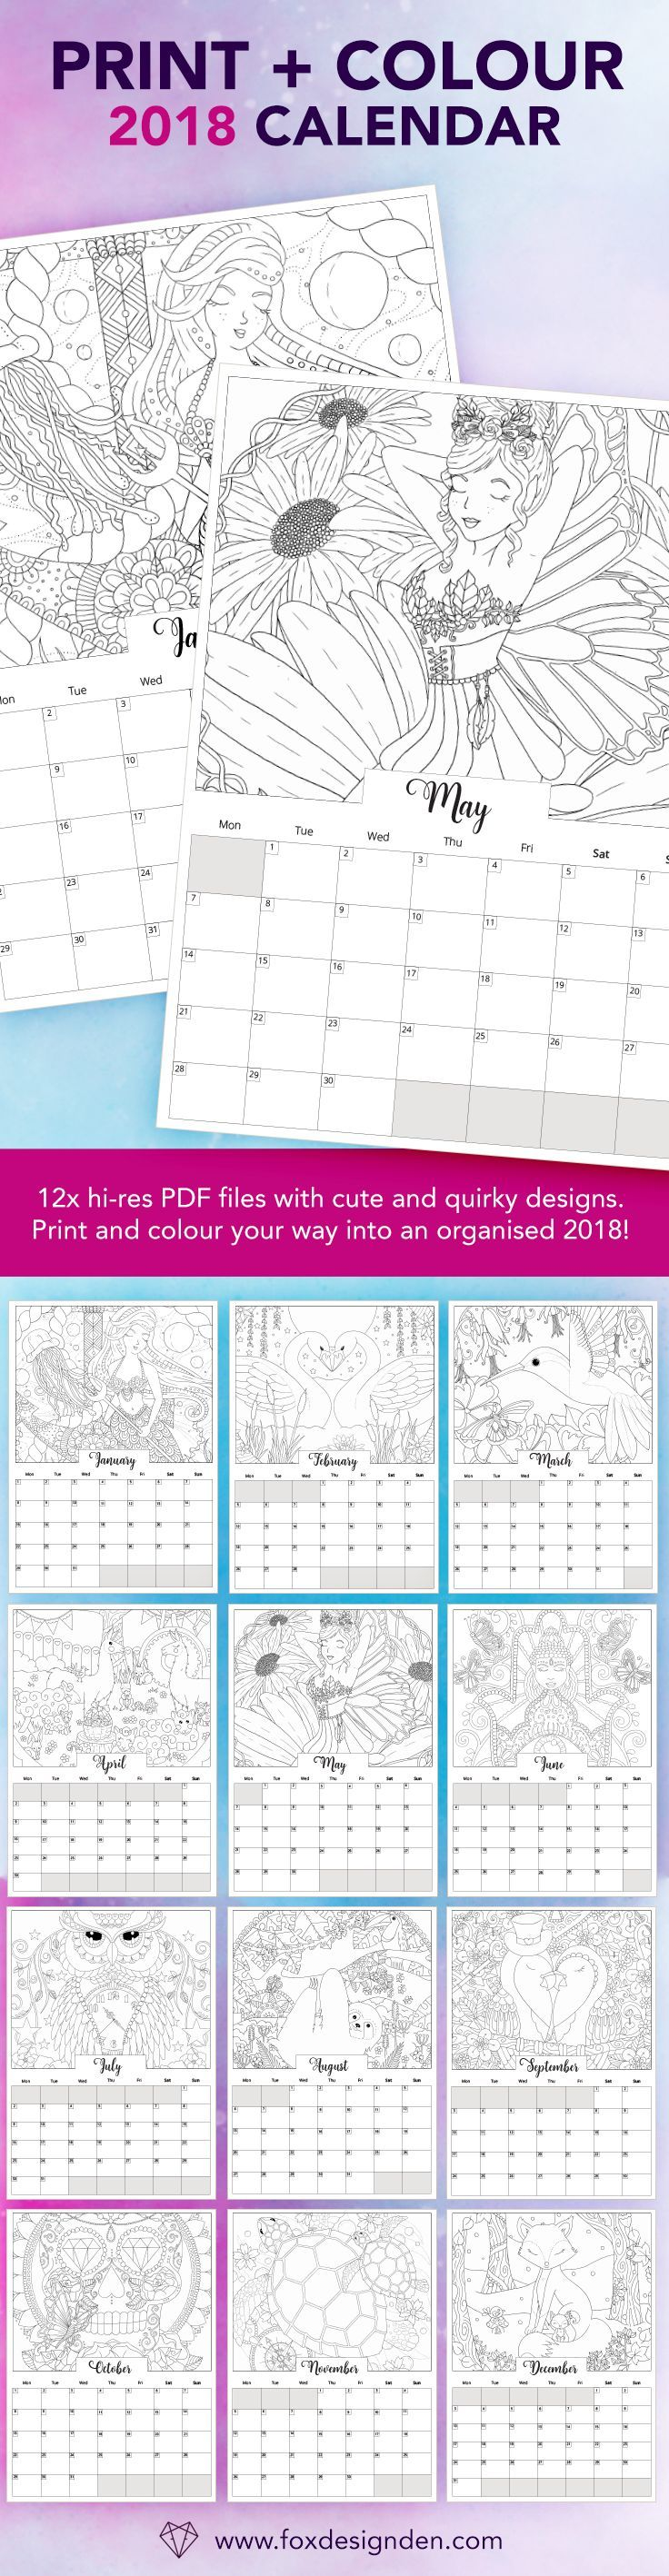 Here are 12 of my favourite coloring page designs in a printable calendar format. This is definitely suited to the creatives out there that want to color their way into an organised 2018! Perfect for printing and putting on a clipboard around the house, i